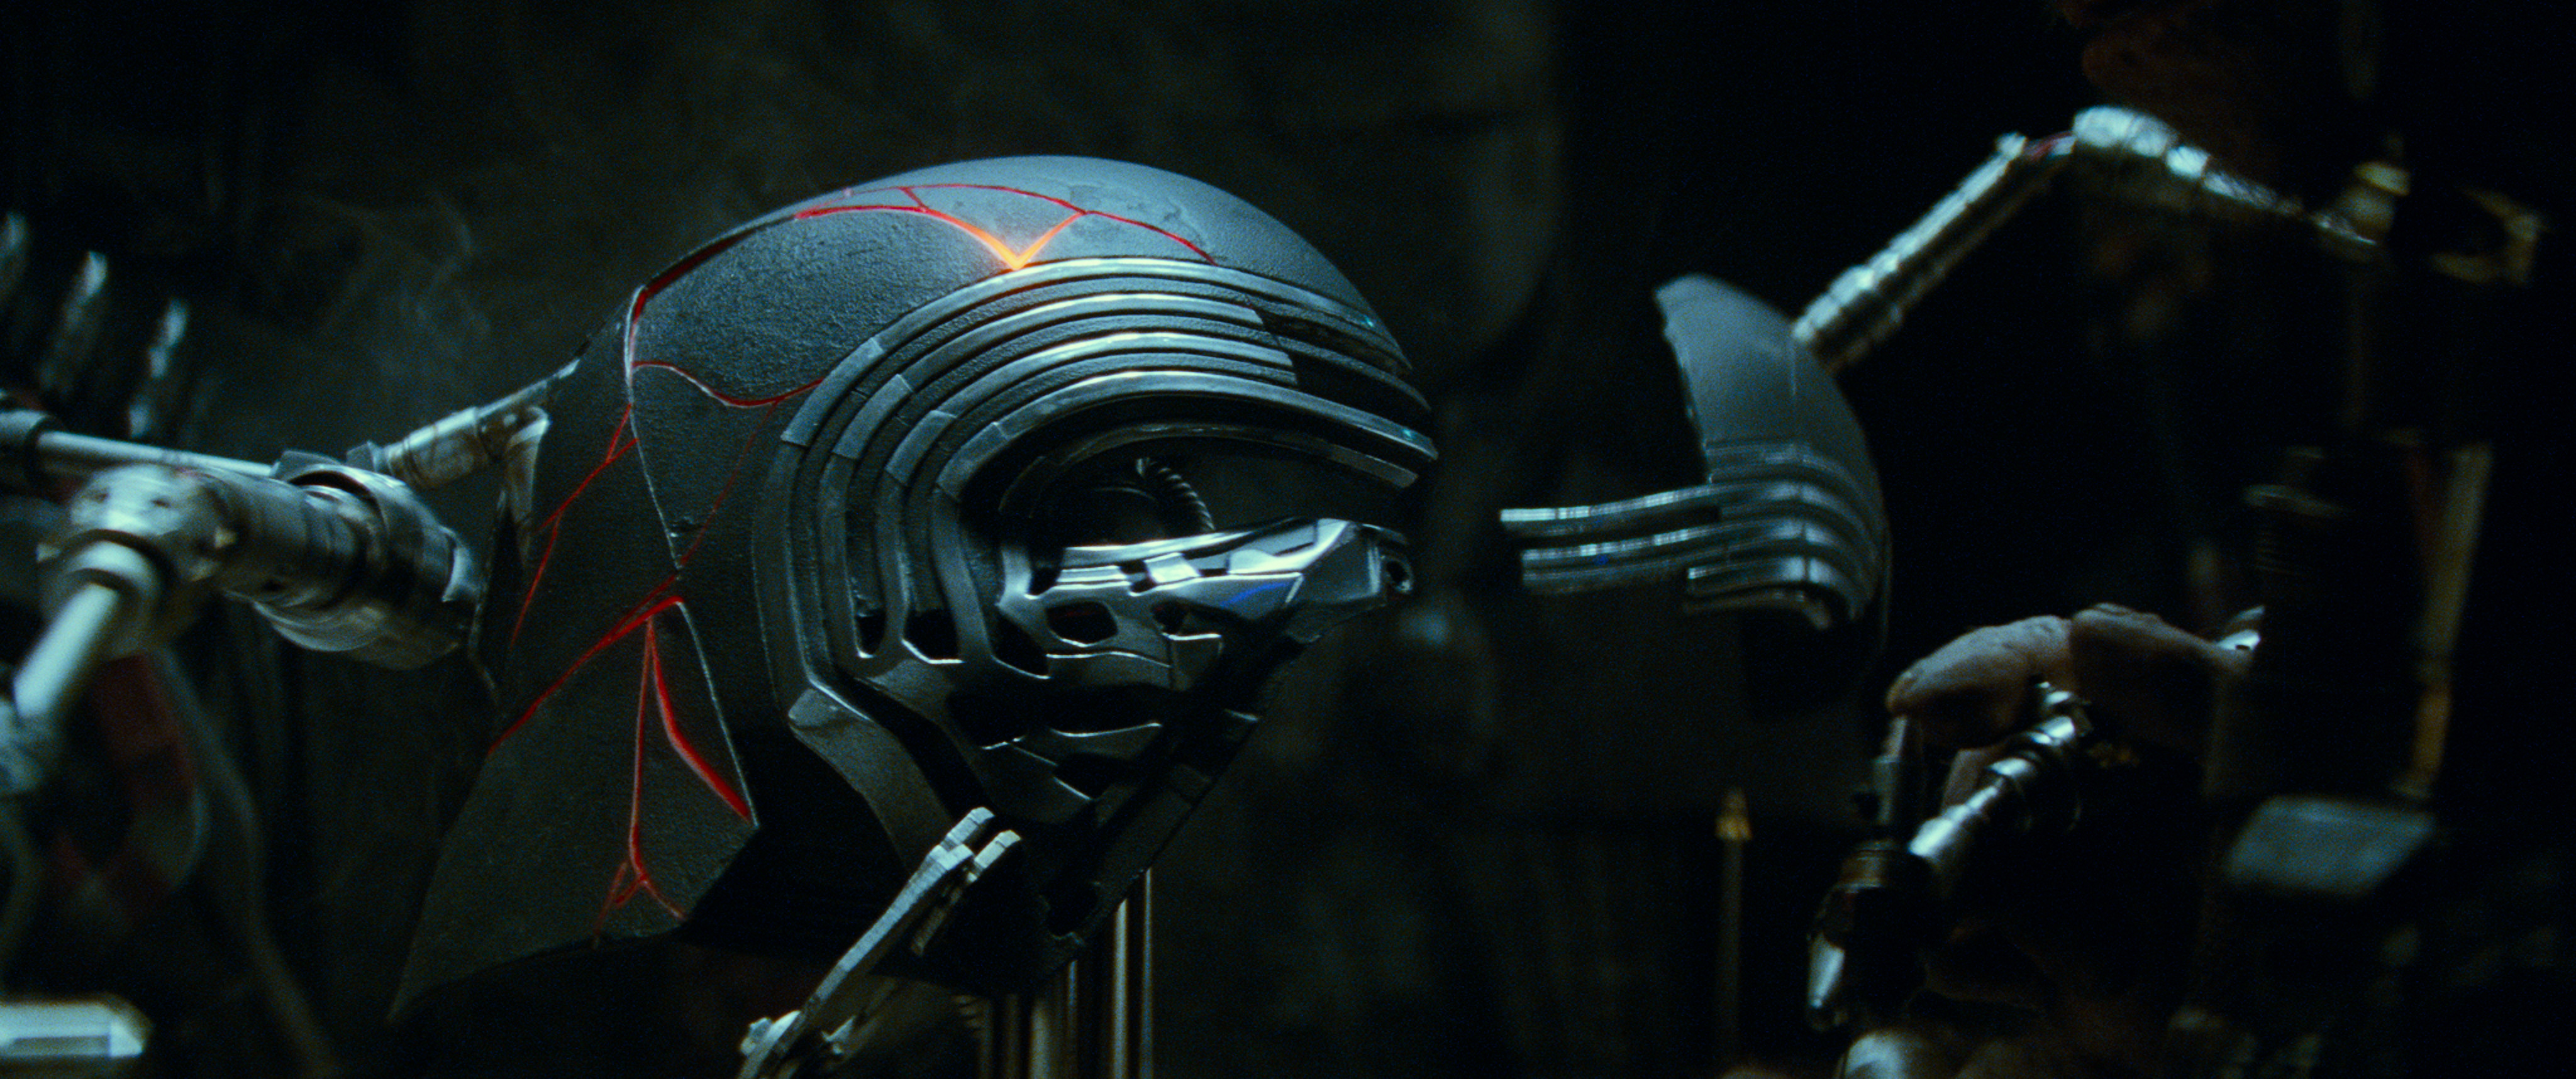 Kylo Ren's restored helmet in STAR WARS: THE RISE OF SKYWALKER.